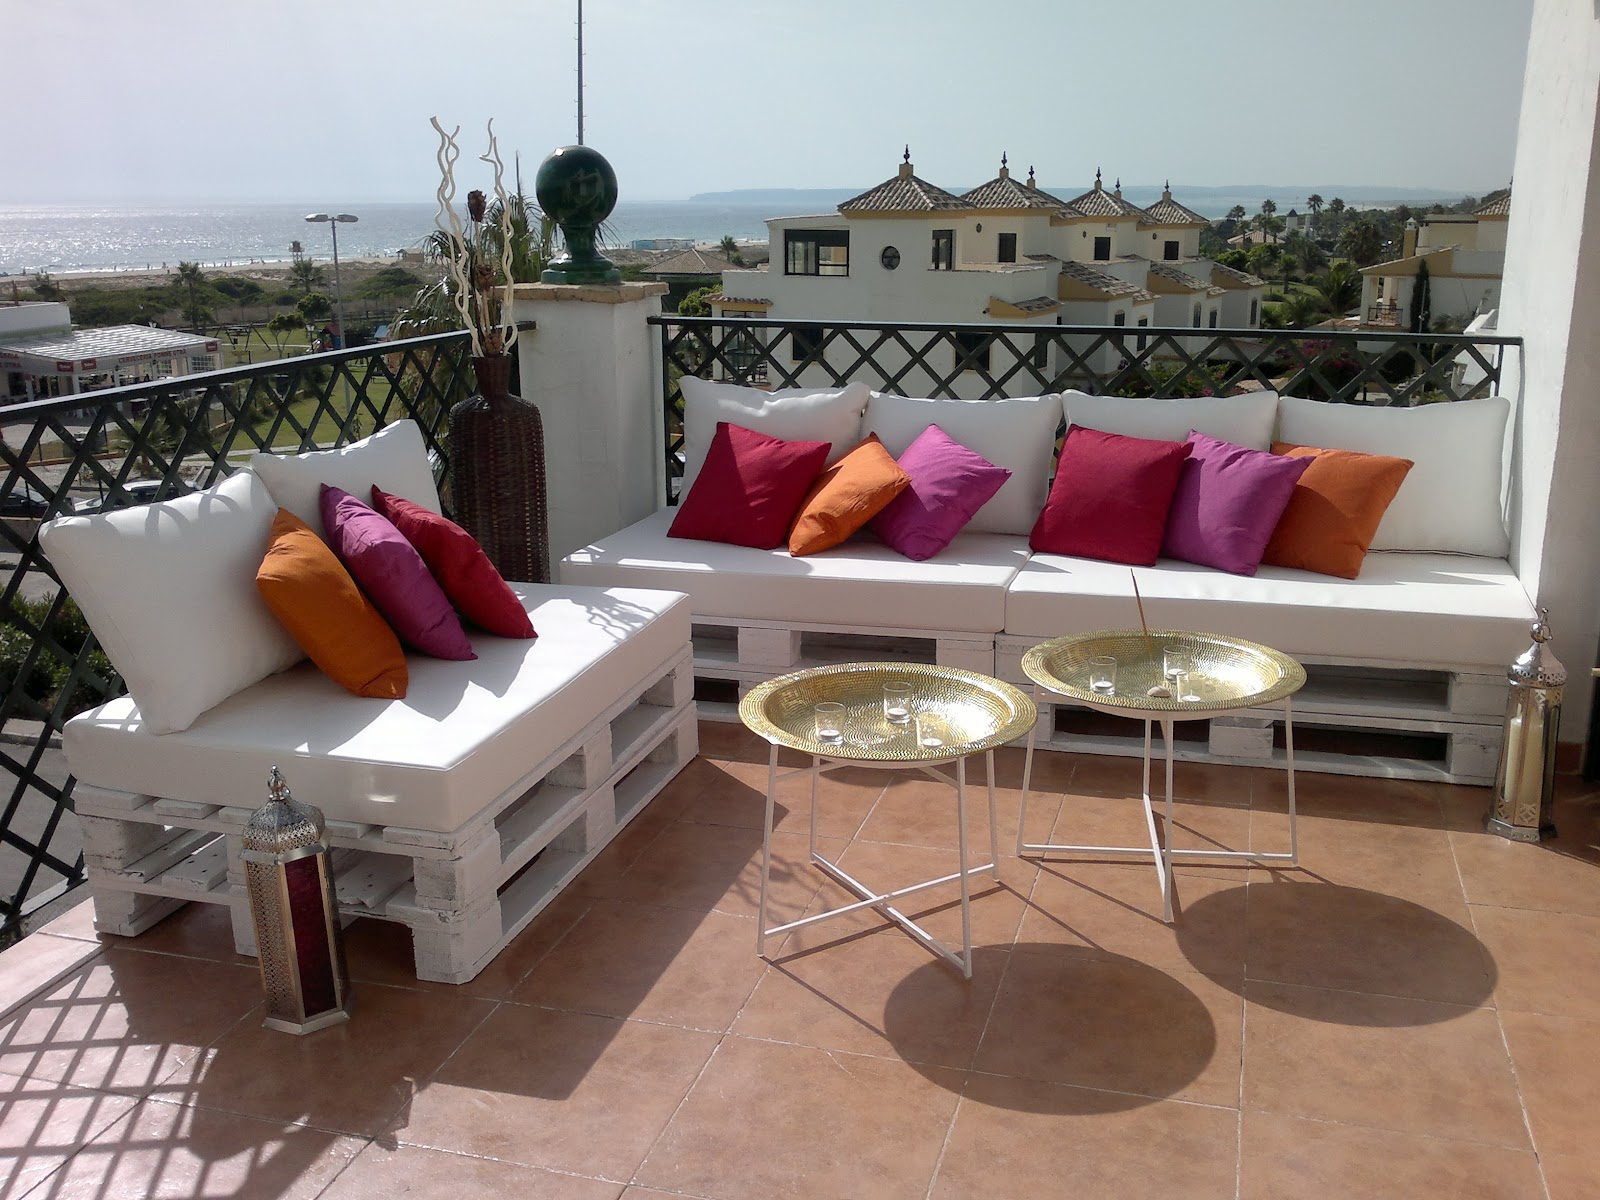 decoracion palets terraza - Chill Out Con Palets